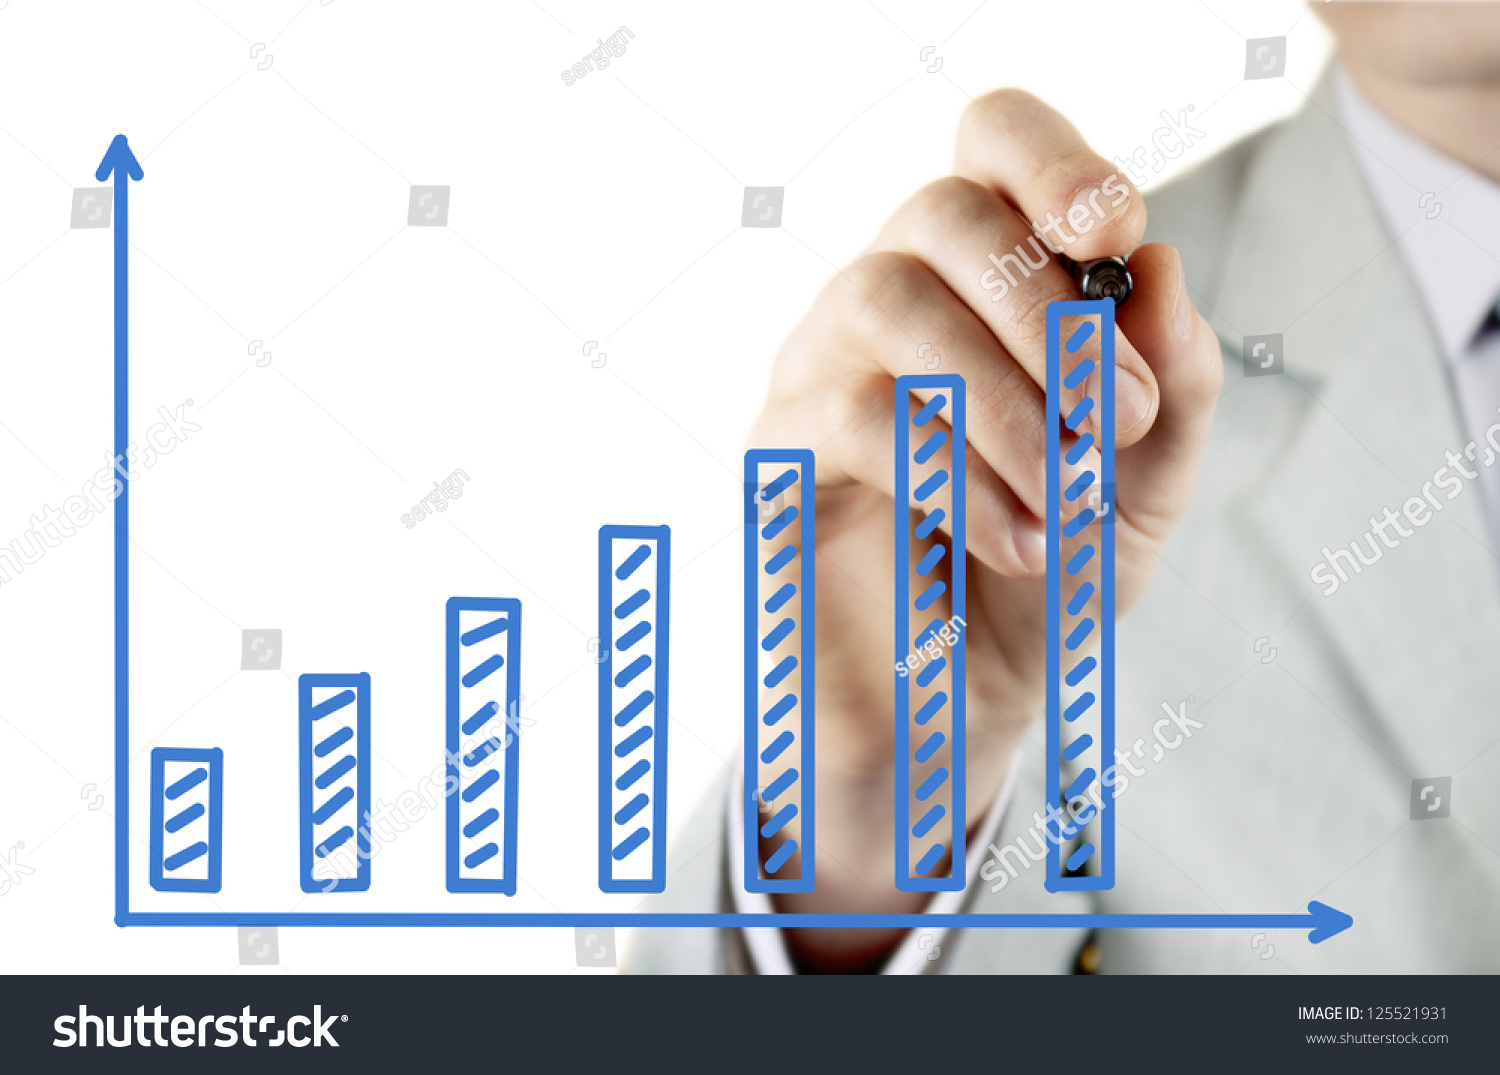 leader draws financial profit growth chart stock. Black Bedroom Furniture Sets. Home Design Ideas